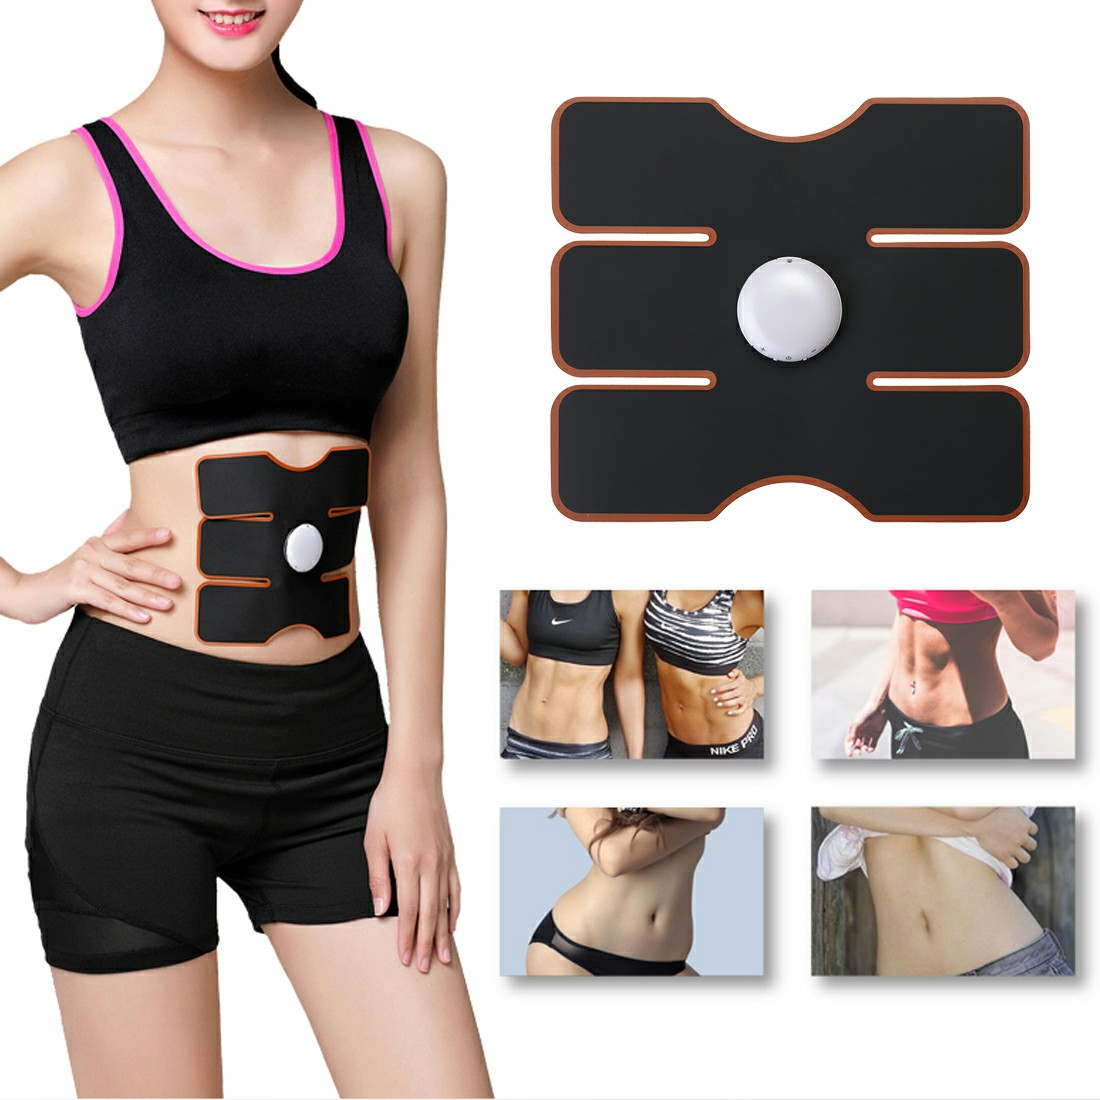 EMS Abdomen Muscle Stimulator Fitness Lifting Trainer Weight Loss Body Slimming Massage